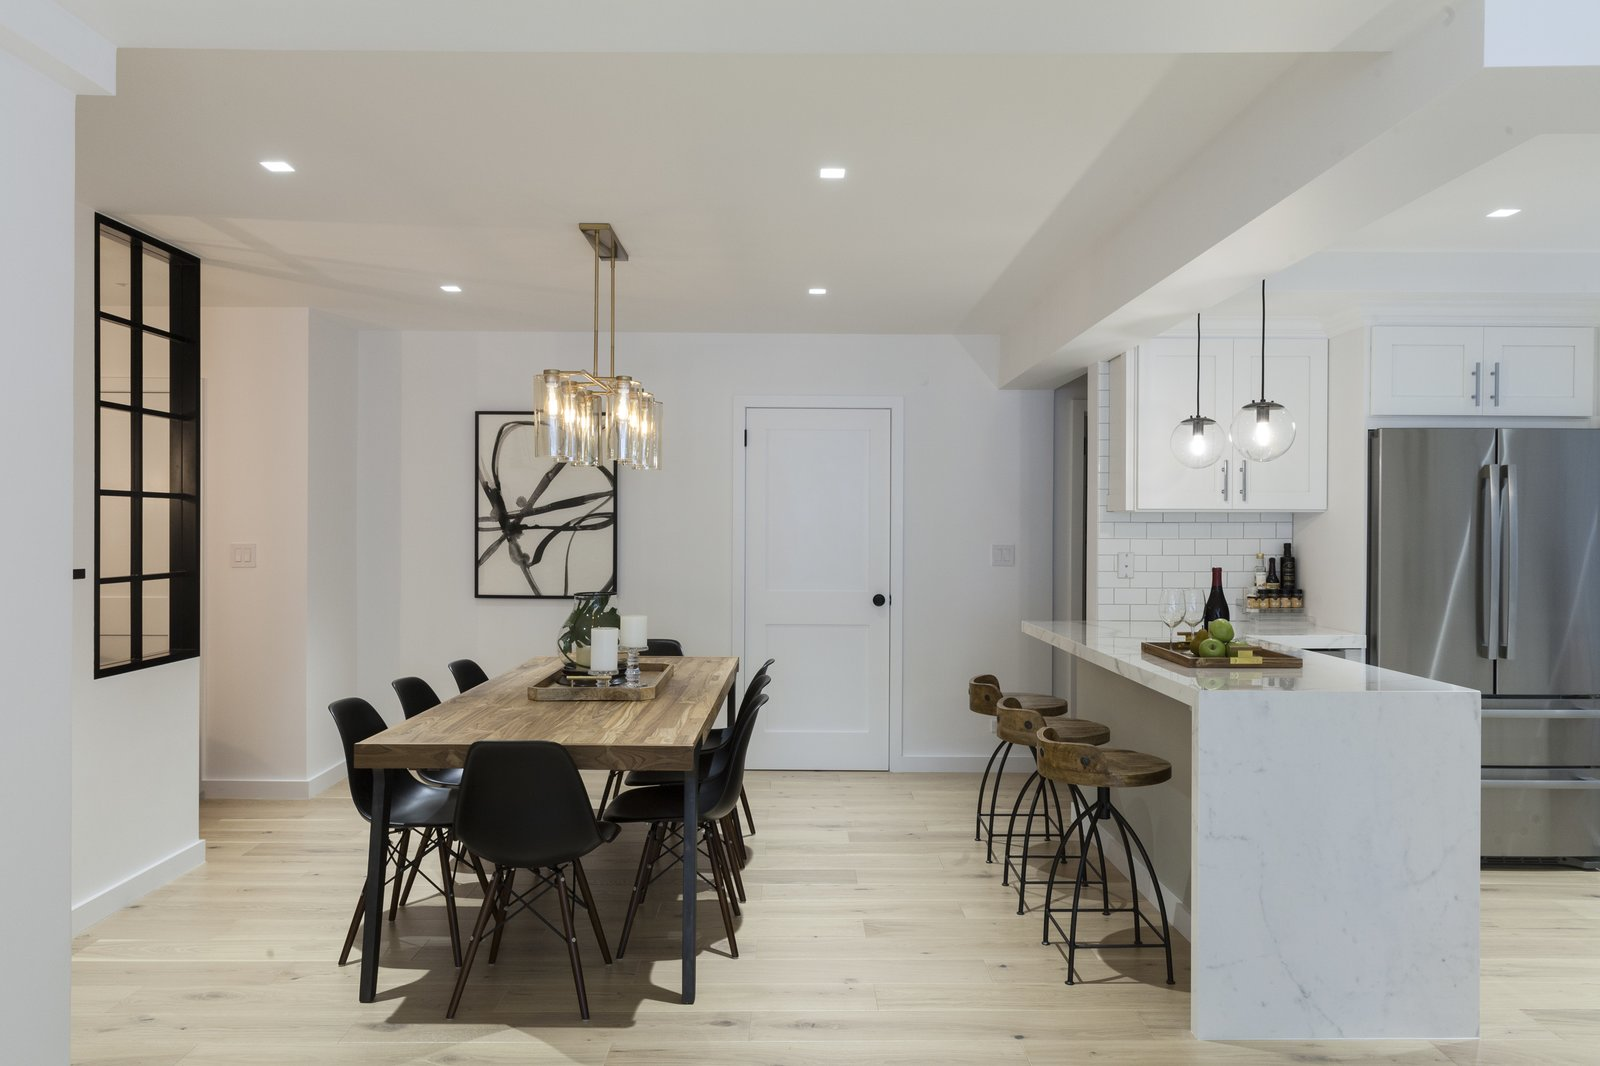 Dining, Pendant, Chair, Accent, Table, Bar, Recessed, Stools, Shelves, Medium Hardwood, Ceiling, and Light Hardwood Dining Room & Kitchen  Best Dining Shelves Pendant Accent Recessed Photos from Upper East Side Oasis